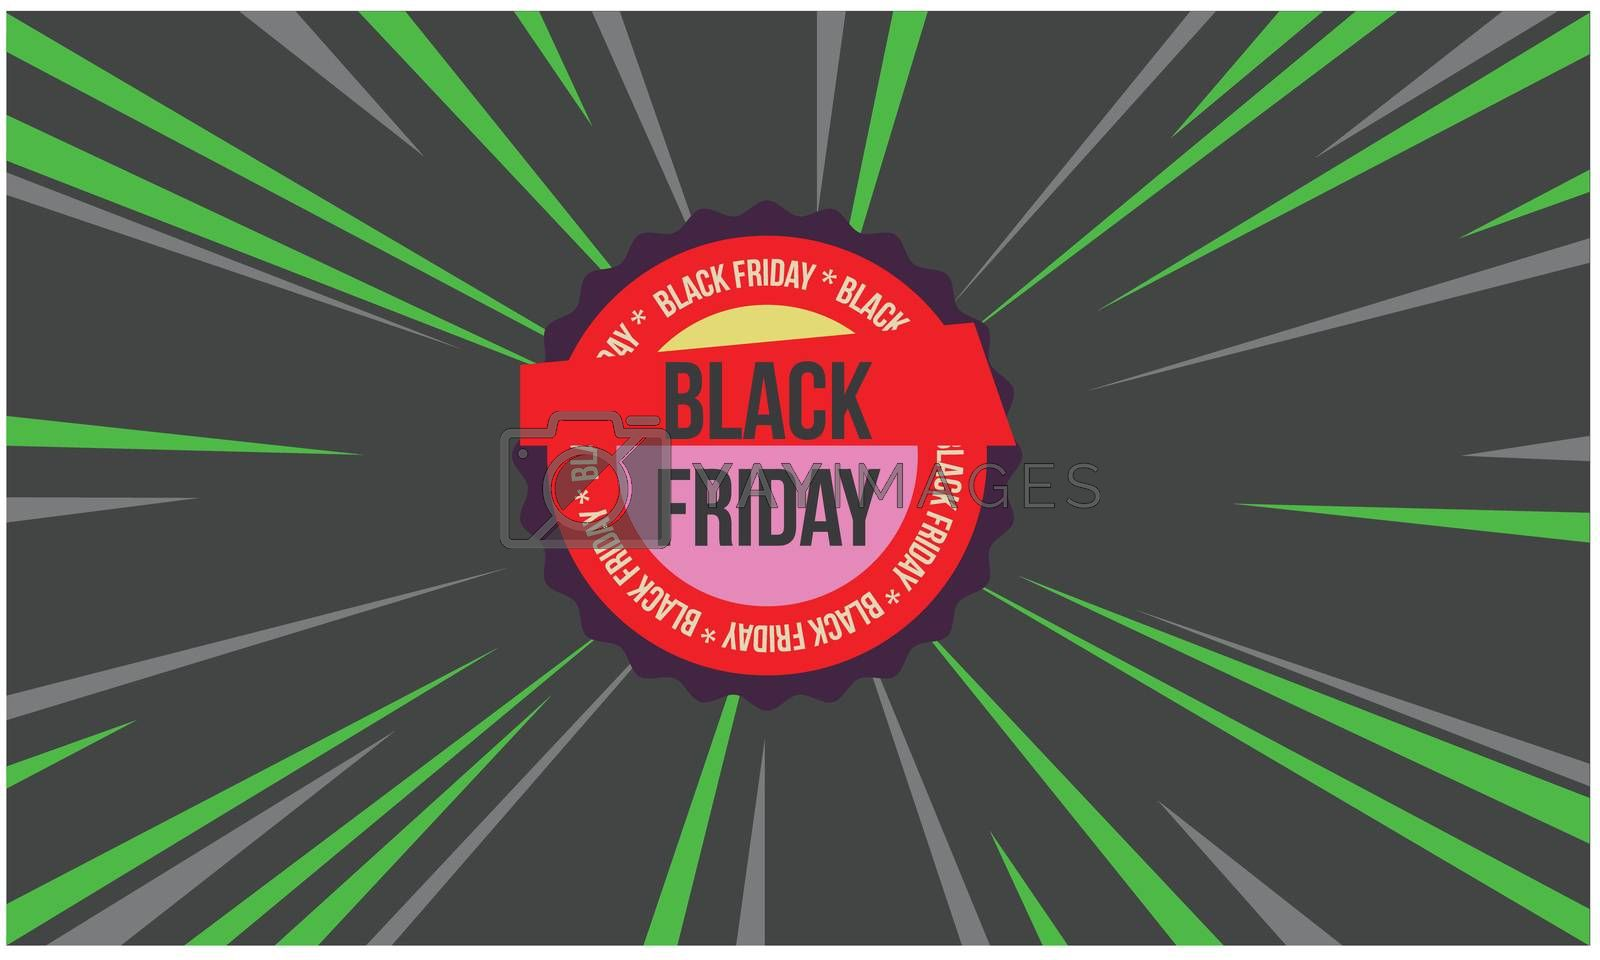 black friday on this coming friday